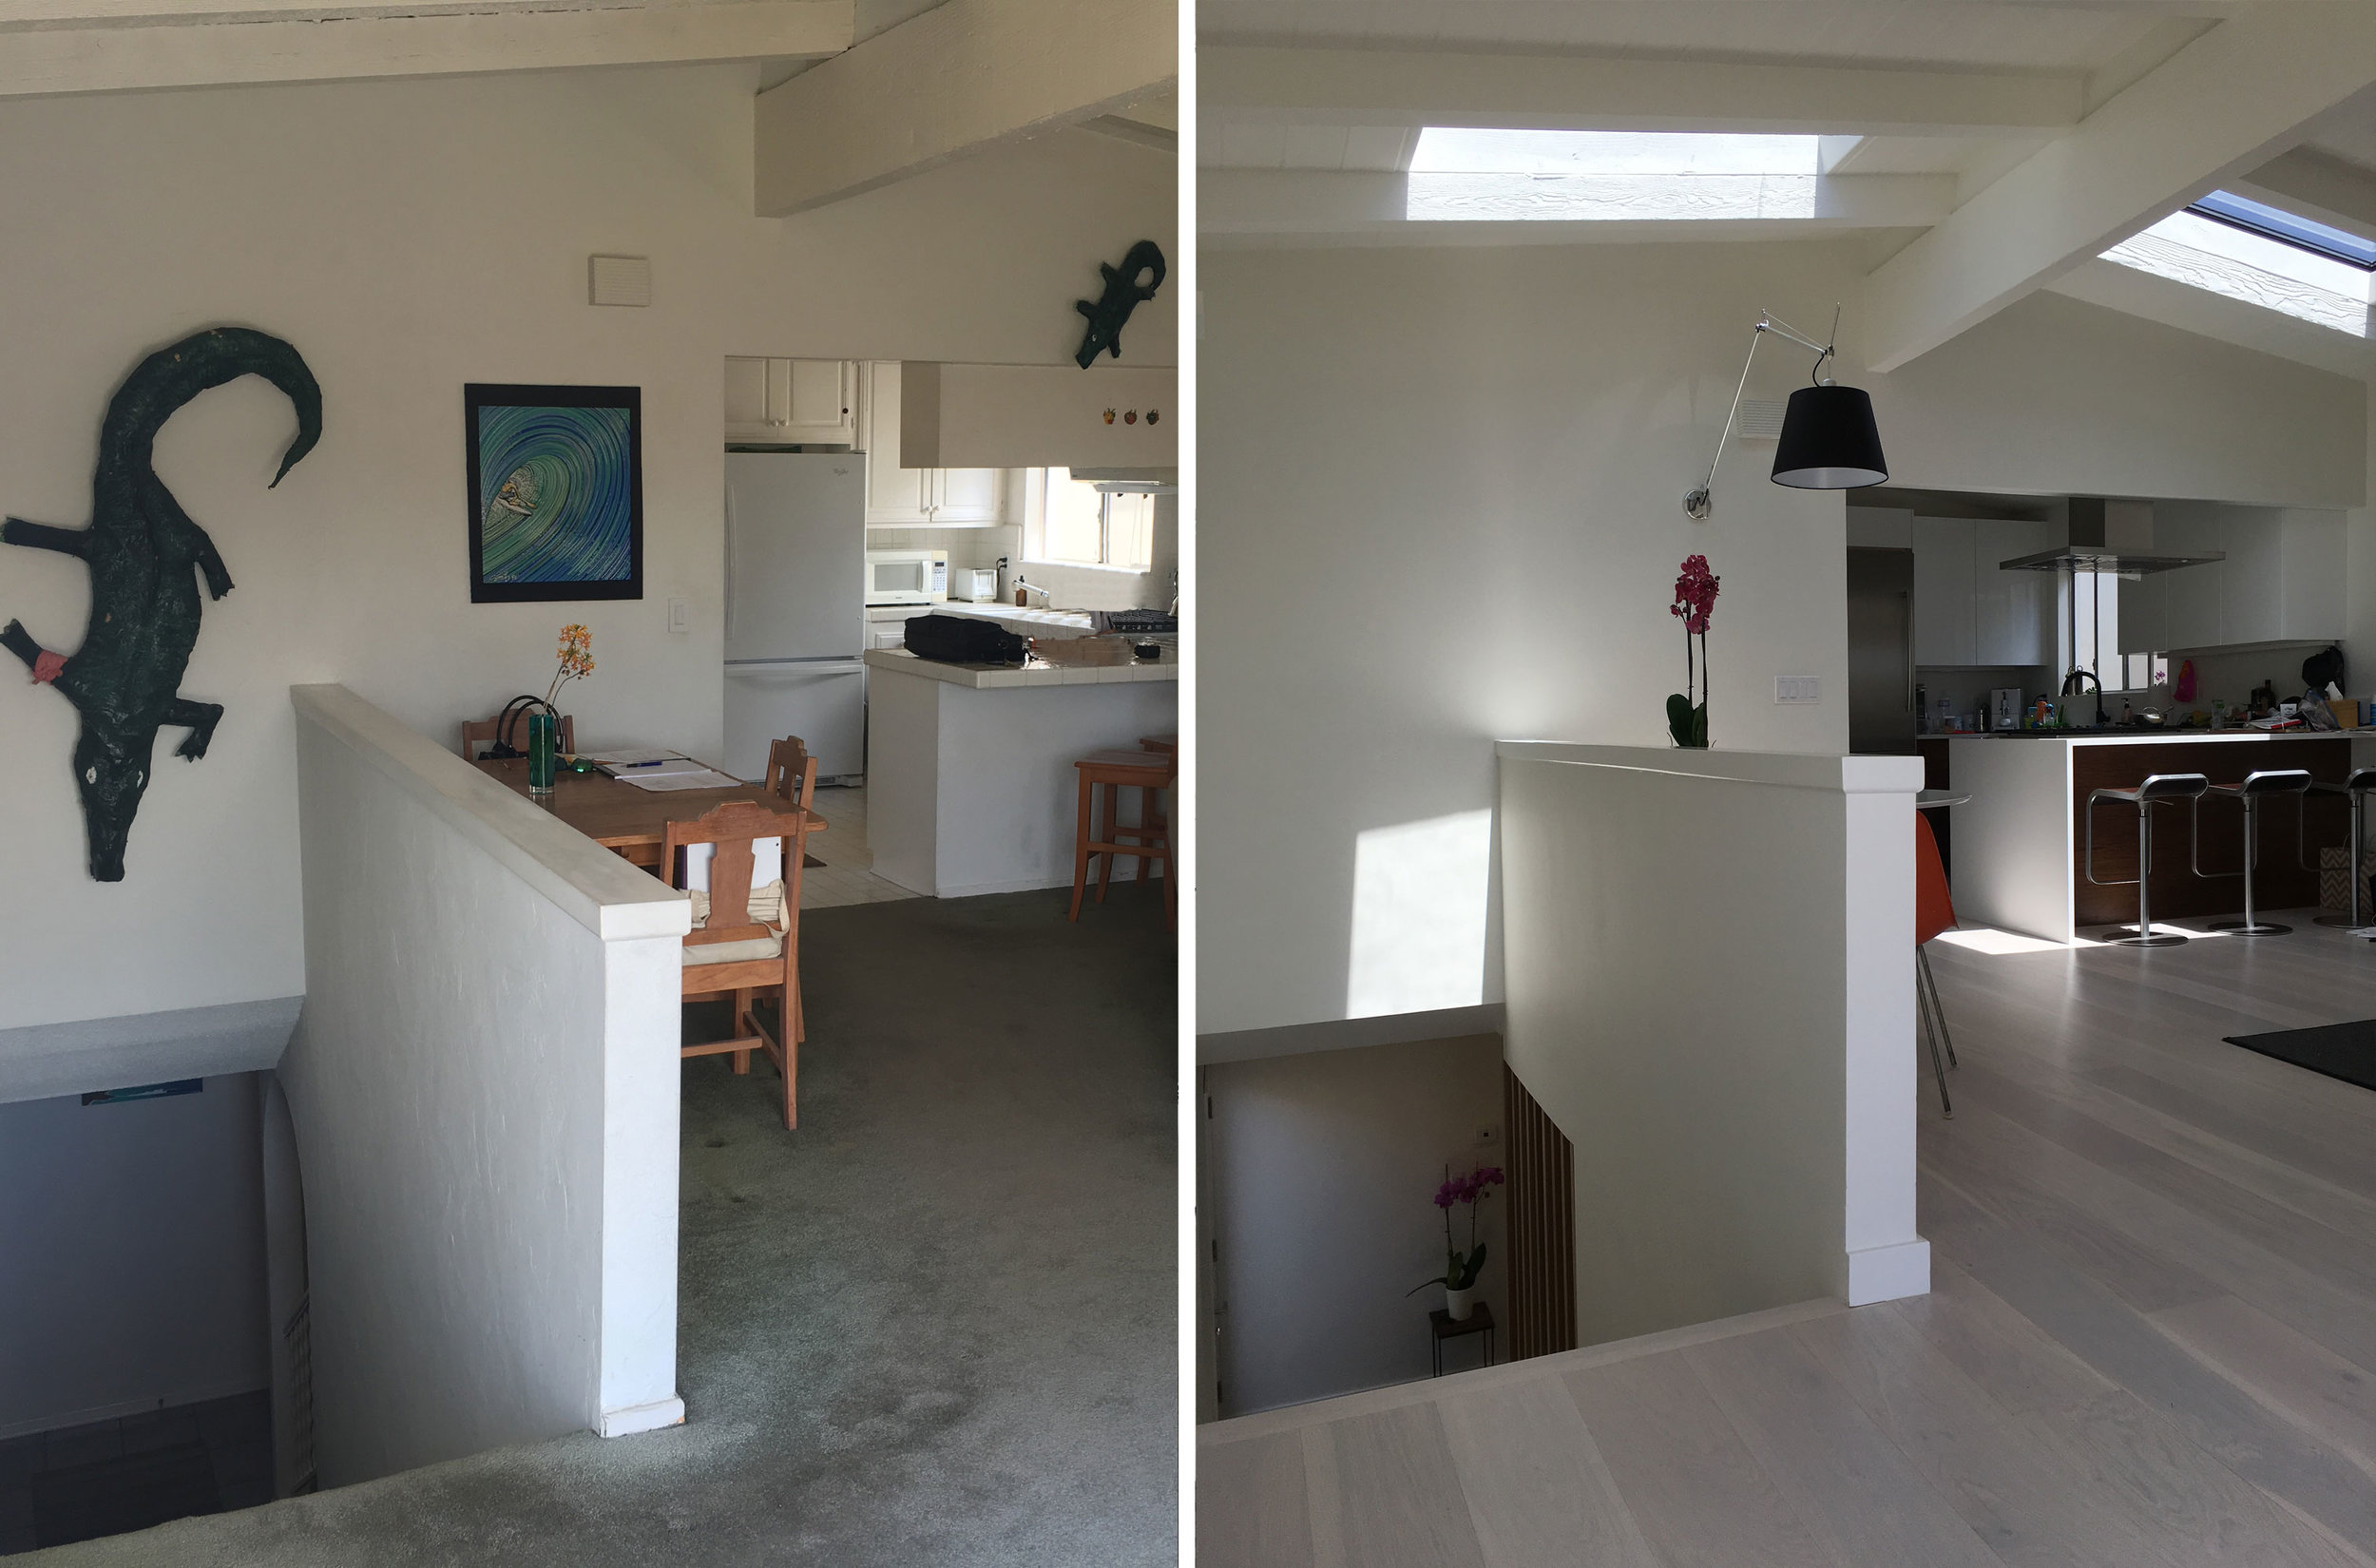 Before and After: Looking into Kitchen from Landing